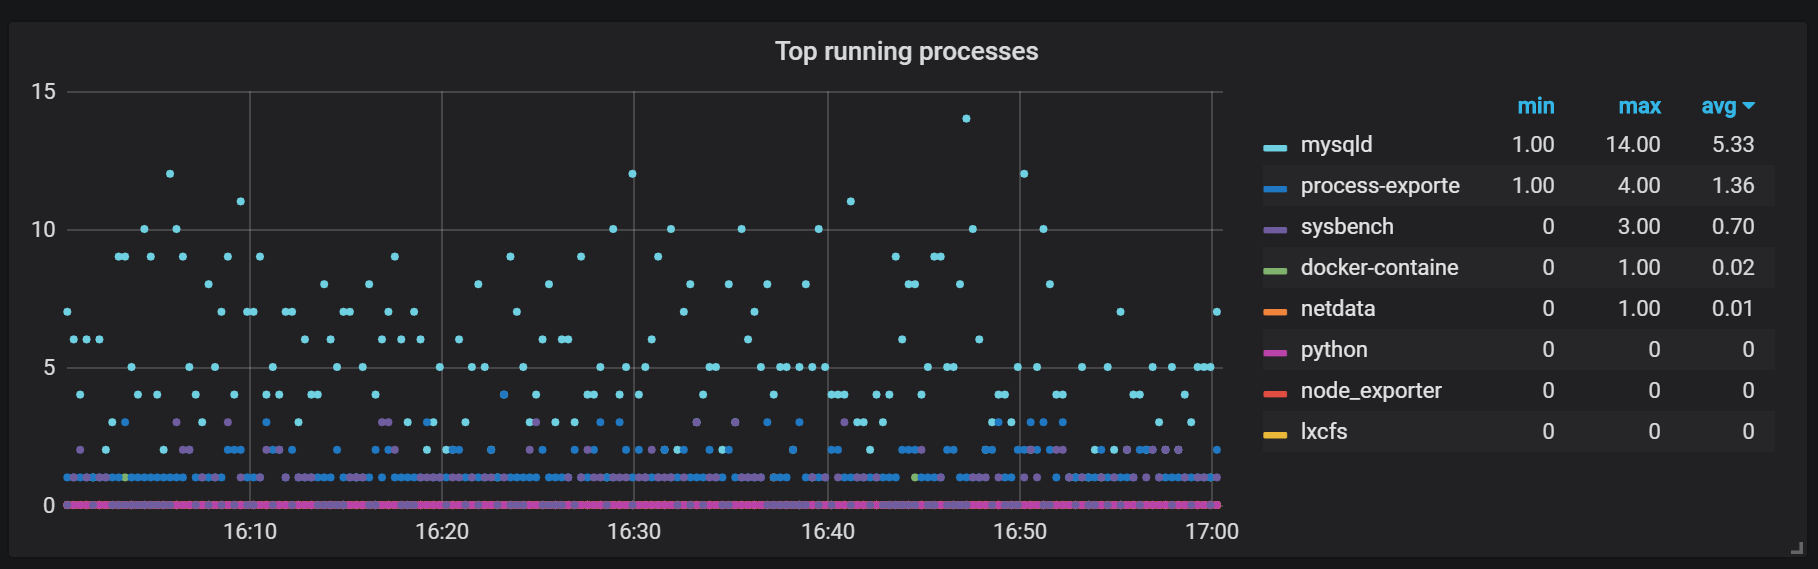 top running processes graph